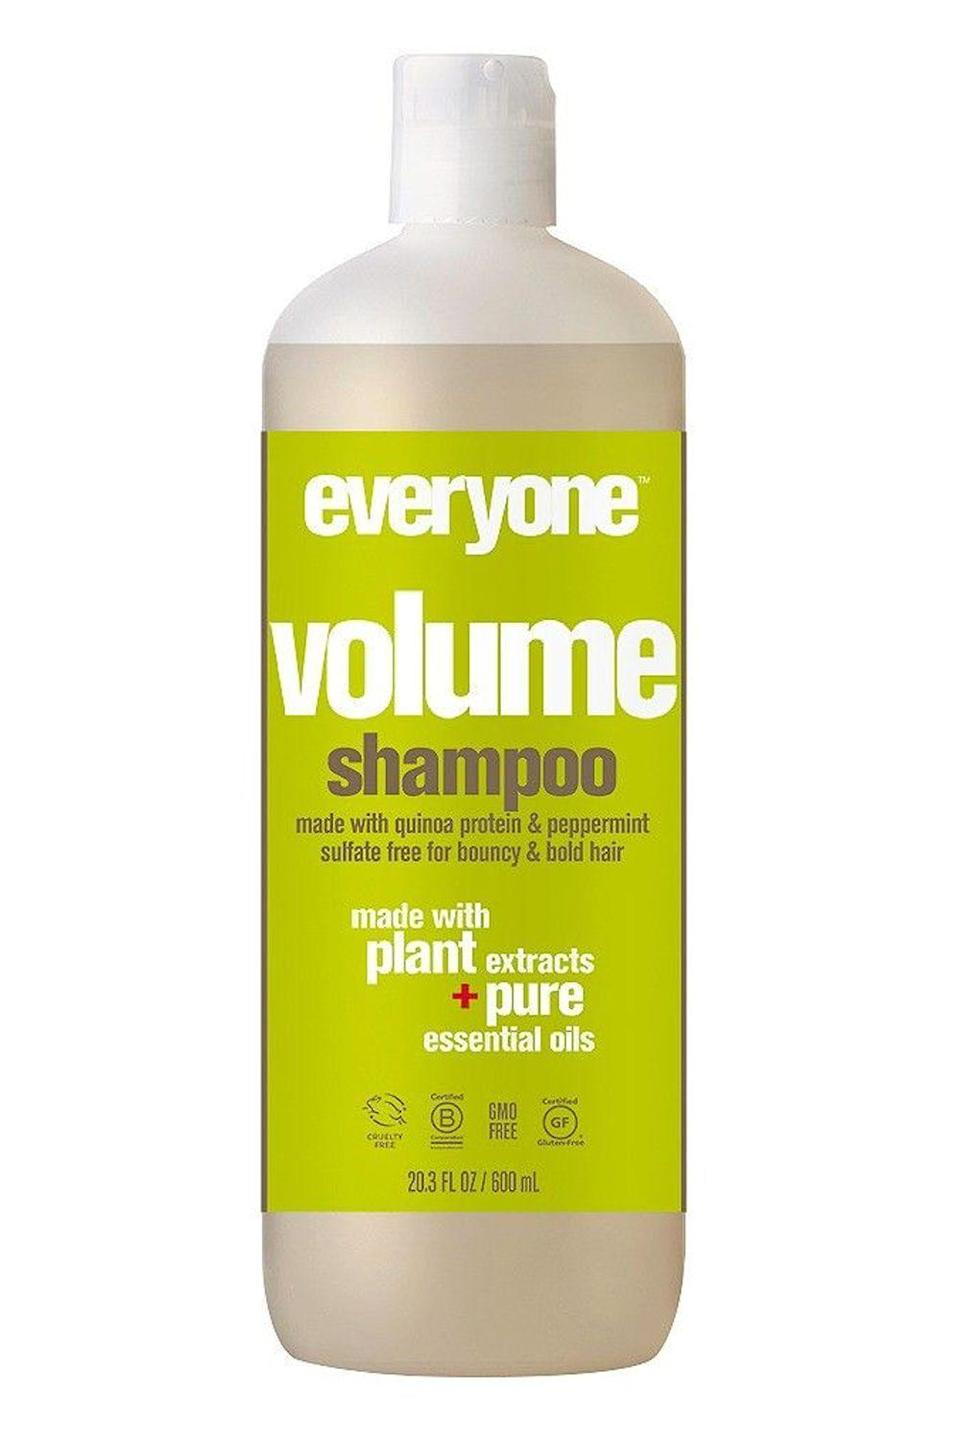 "<p><strong>everyone</strong></p><p>target.com</p><p><strong>$8.69</strong></p><p><a href=""https://www.target.com/p/everyone-volume-shampoo-20-3-fl-oz/-/A-21547148"" rel=""nofollow noopener"" target=""_blank"" data-ylk=""slk:Shop Now"" class=""link rapid-noclick-resp"">Shop Now</a></p><p><a href=""https://www.cosmopolitan.com/style-beauty/beauty/a19642775/fine-hair-styling-tips/"" rel=""nofollow noopener"" target=""_blank"" data-ylk=""slk:Fine, flat hair"" class=""link rapid-noclick-resp"">Fine, flat hair</a> will love the volumizing effects of this organic shampoo. It uses a blend of quinoa protein (a vegan alternative to keratin) and energizing peppermint extract to <strong>plump up the hair shaft will stimulate your scalp for fuller, thicker-looking hair</strong>. And the formula isn't just organic—it's GMO-free, gluten-free, and cruelty-free too.</p>"